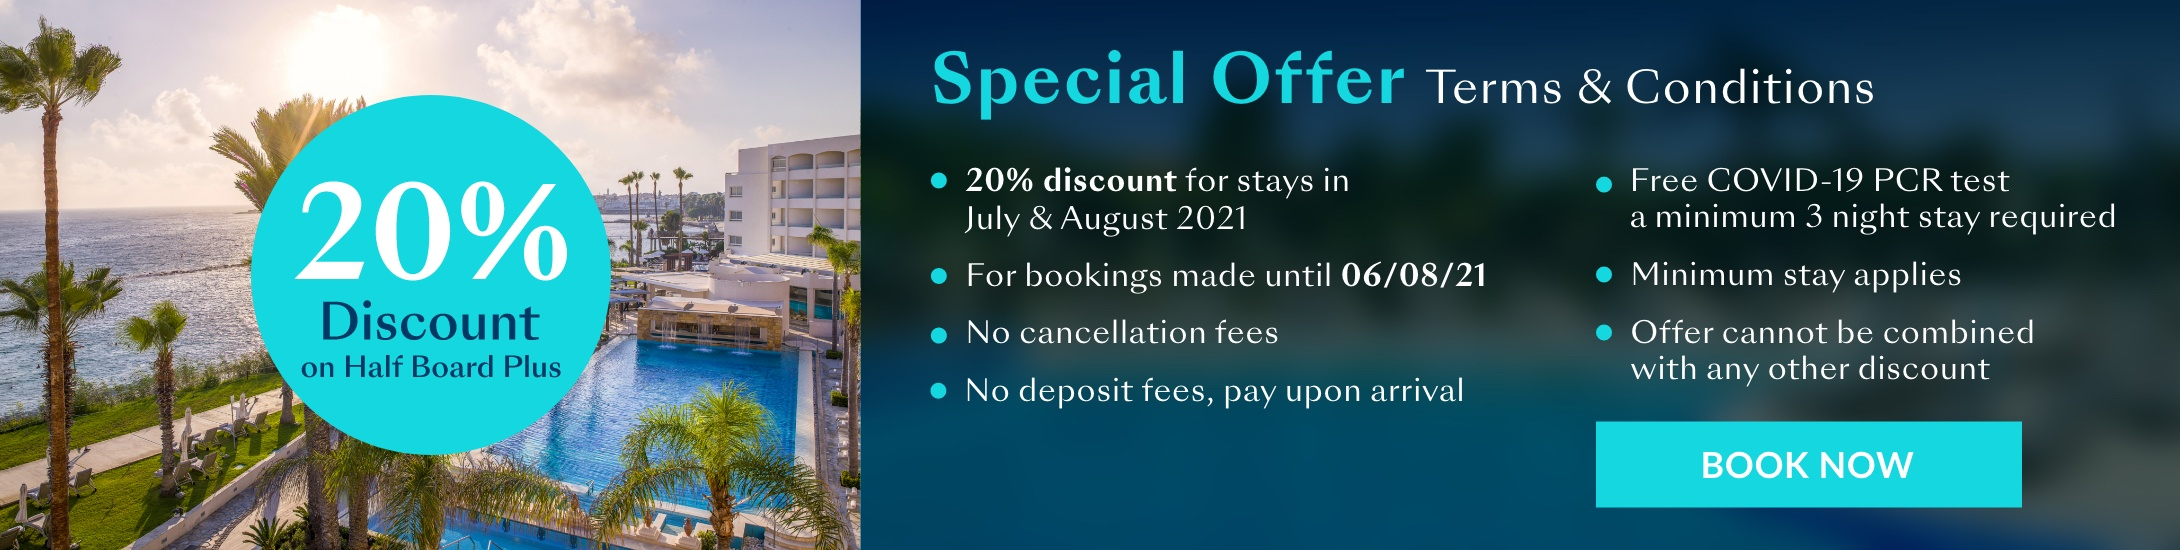 BOOK NOW ALEXANDER THE GREAT BEACH HOTEL